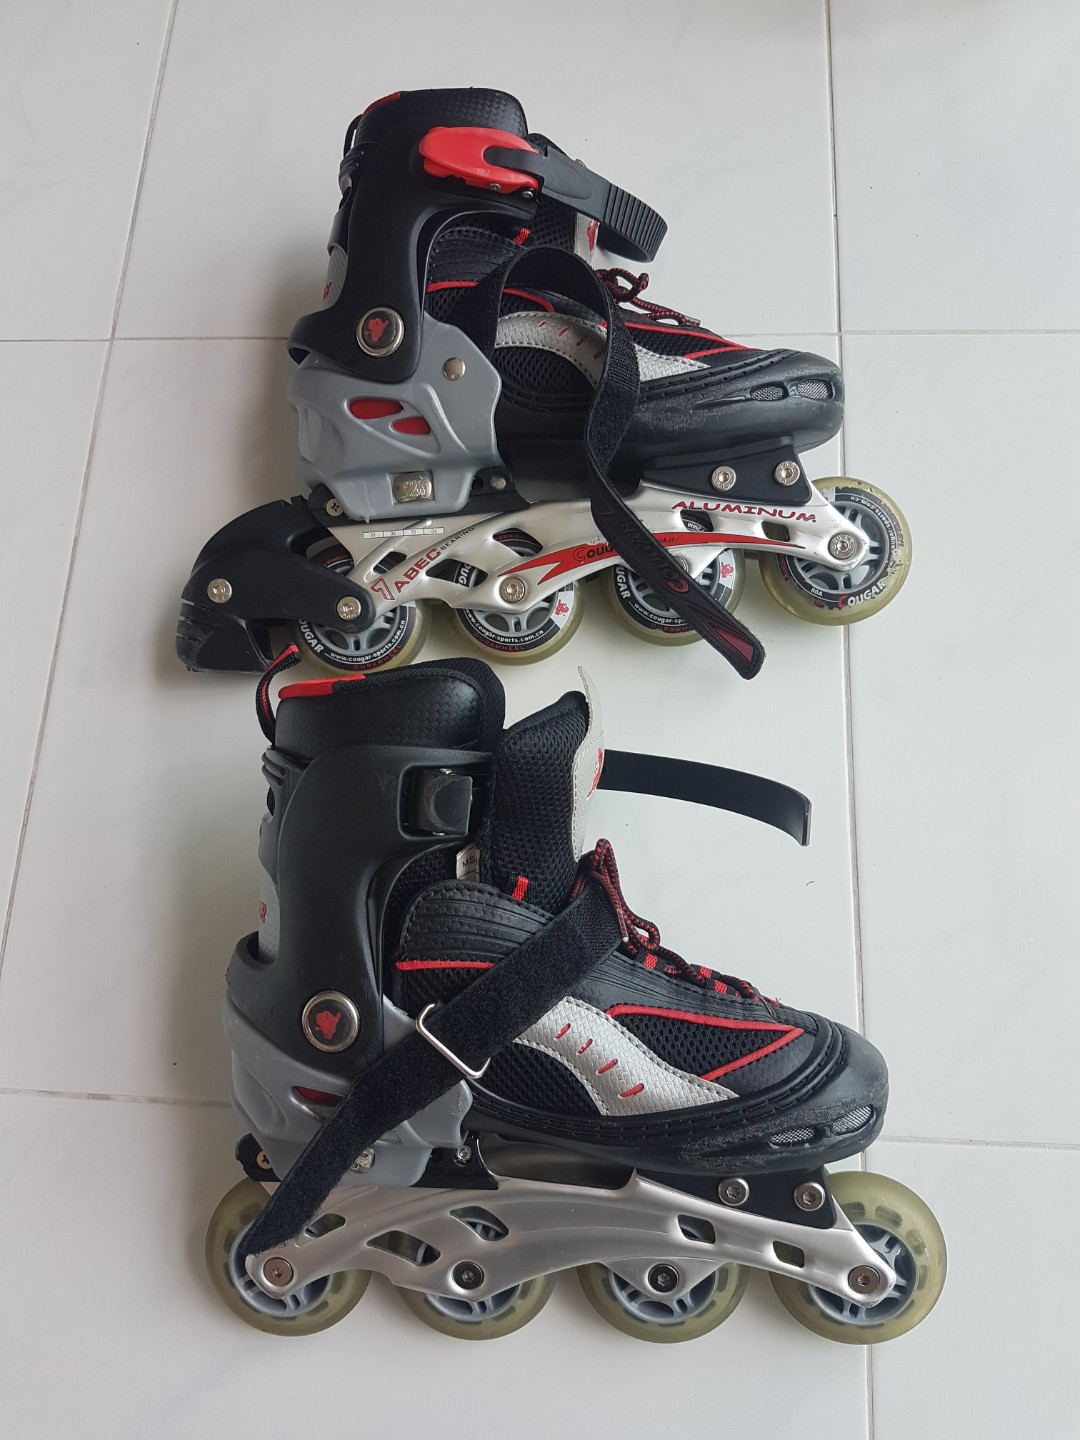 f04fb7ce5f3 Cougar In-Line Skates, Sports, Sports & Games Equipment on Carousell